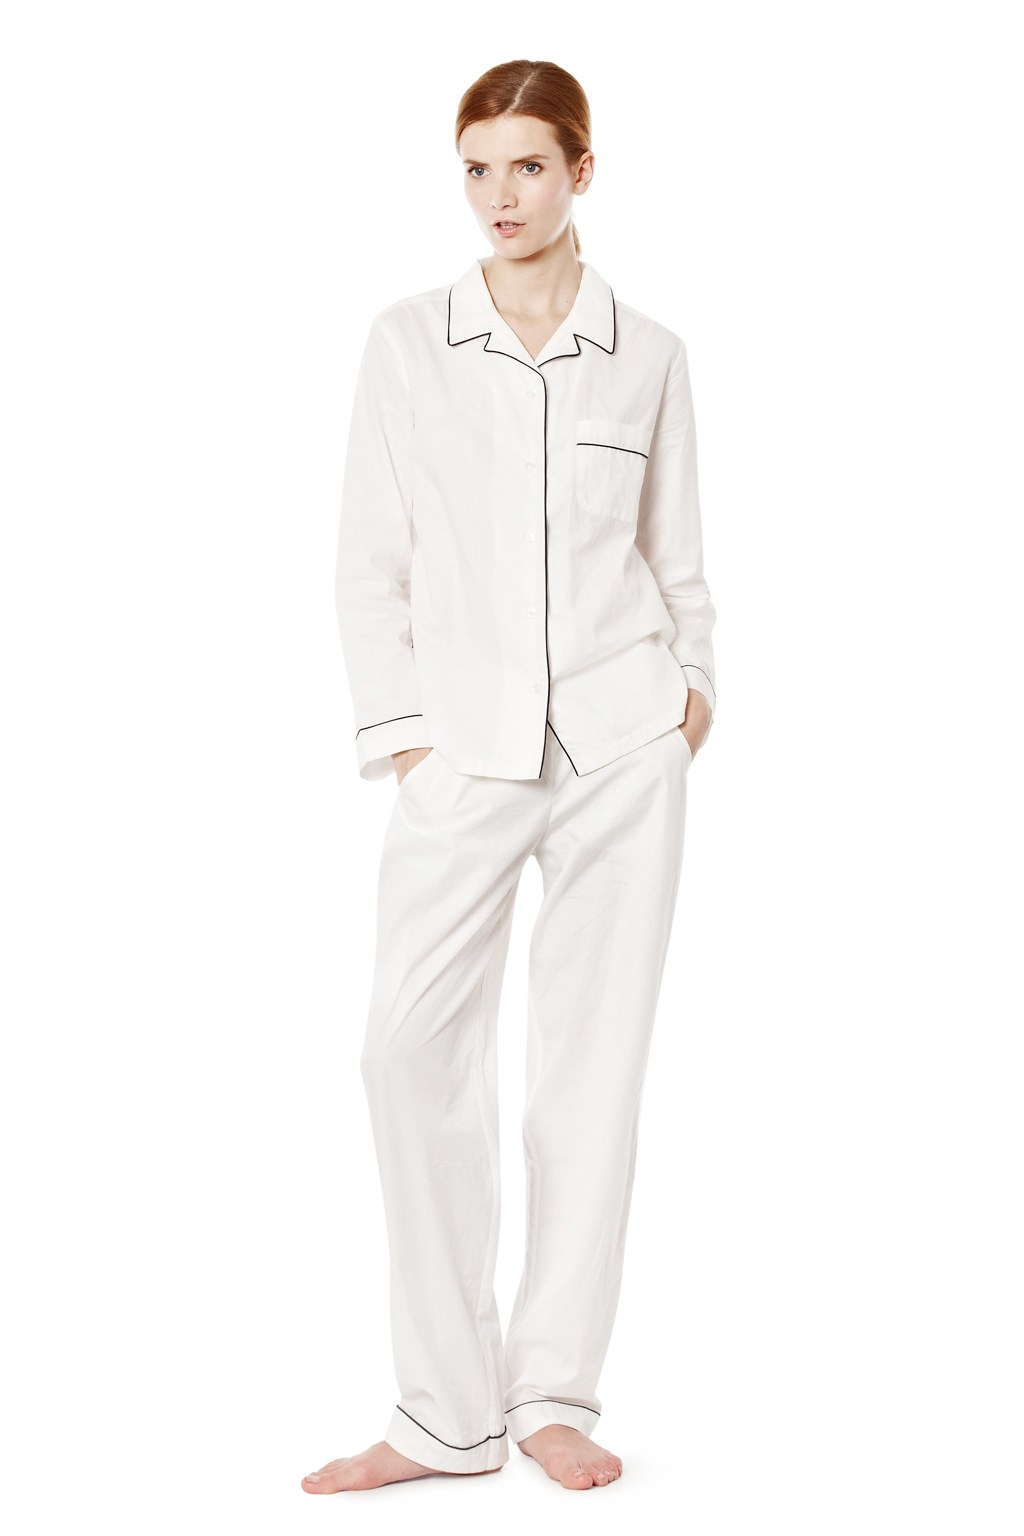 Shop for white pajamas online at Target. Free shipping on purchases over $35 and save 5% every day with your Target REDcard.